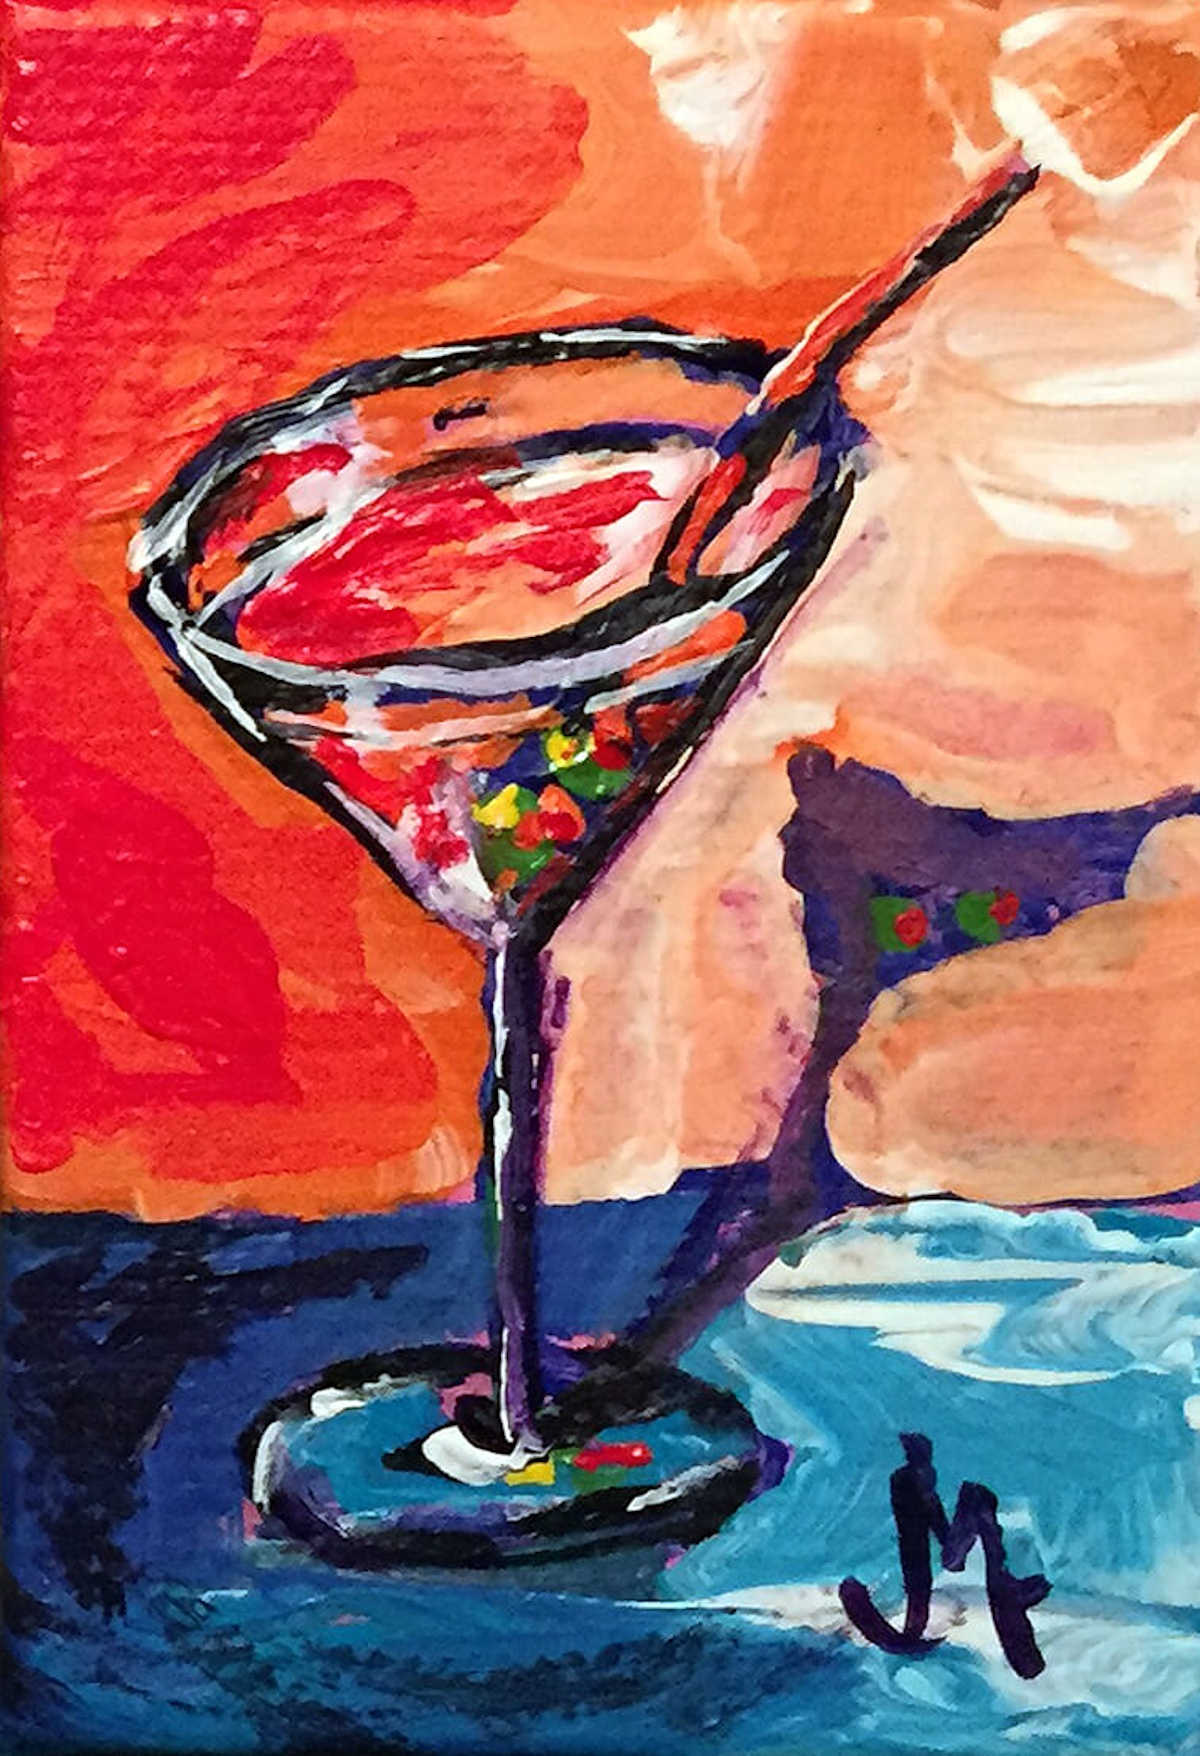 Mini Martini - Painting by JanettMarie